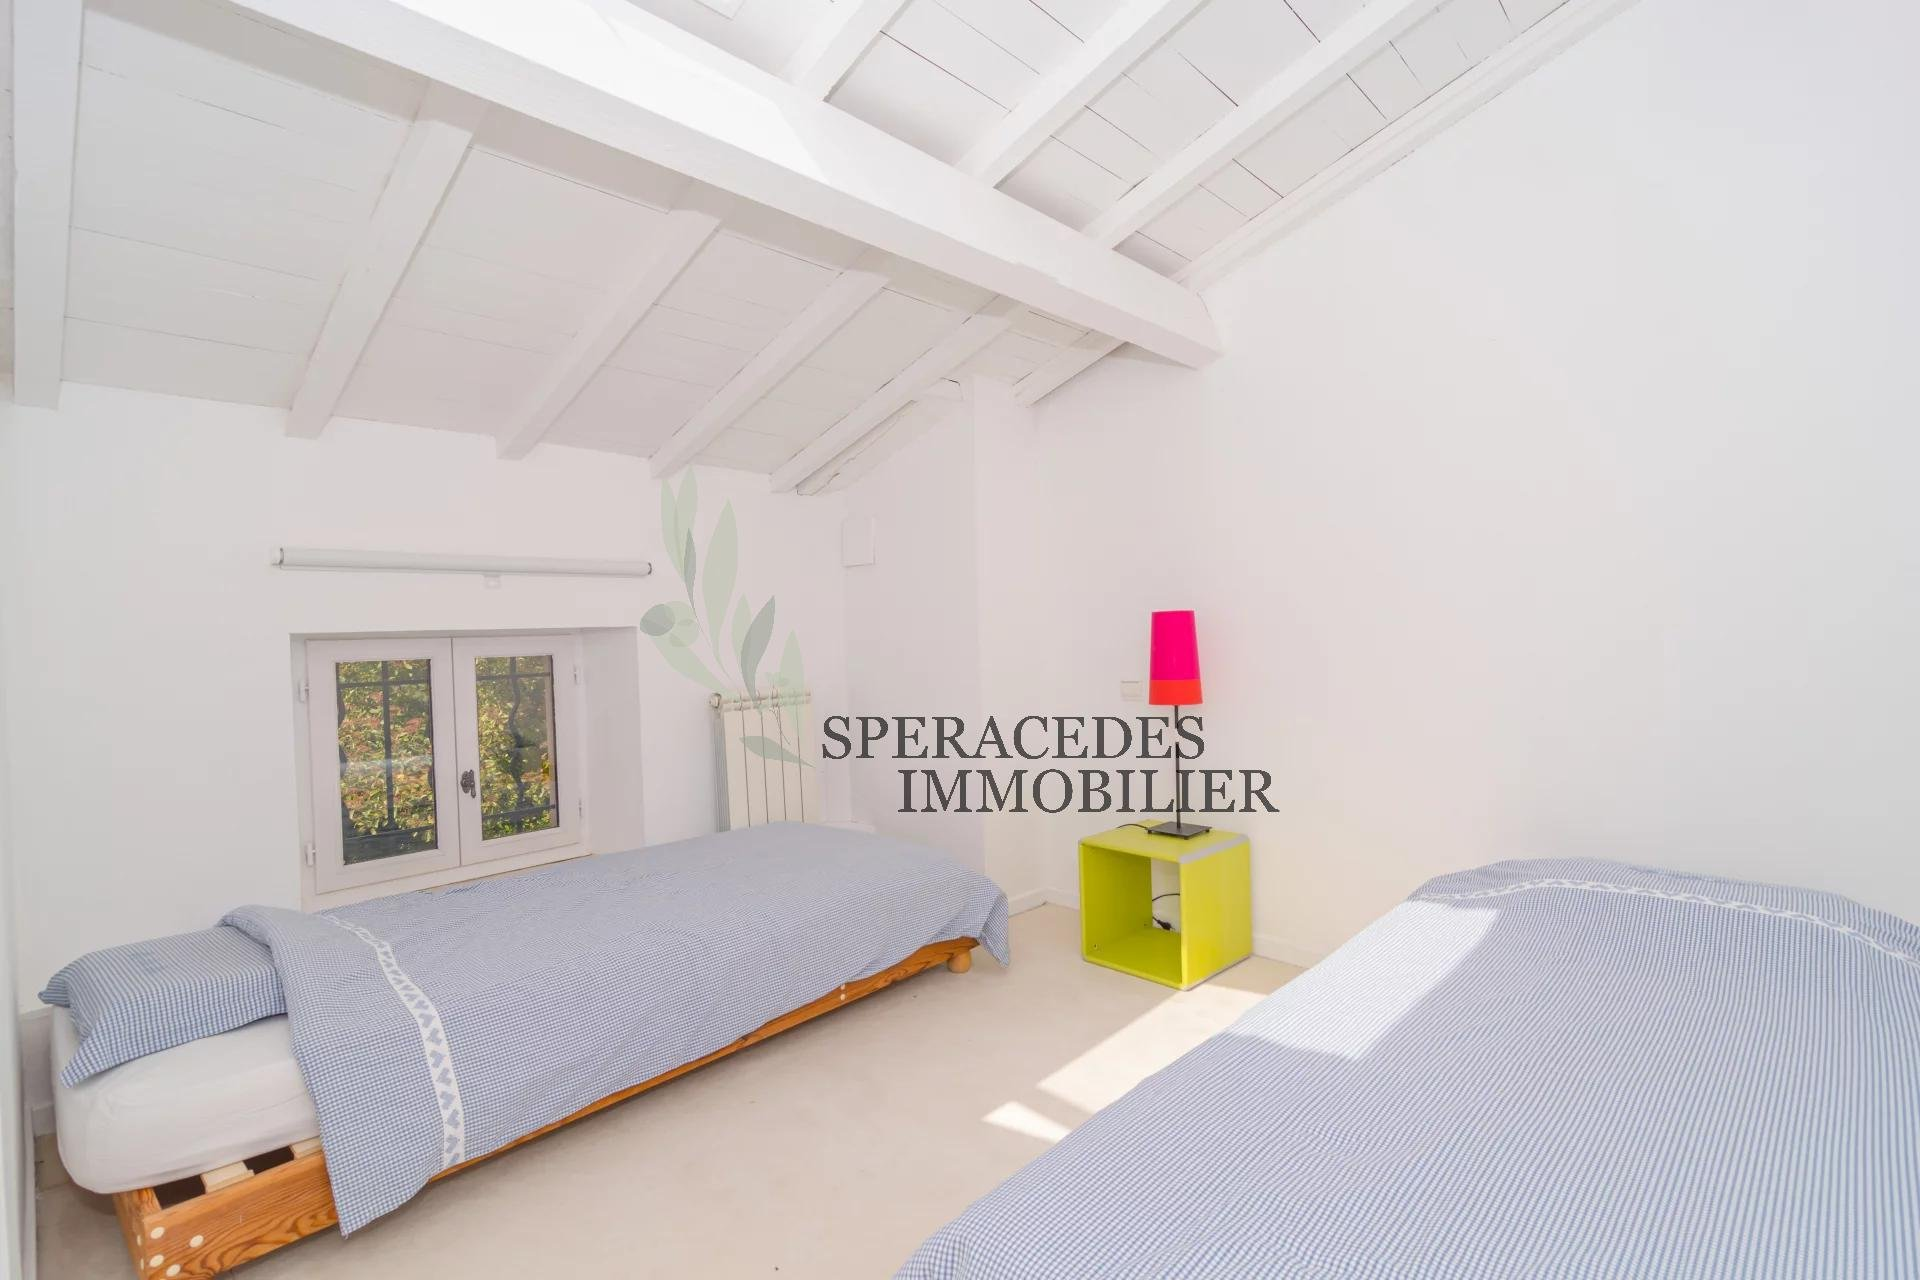 Speracedes - Bastide of the 18th century